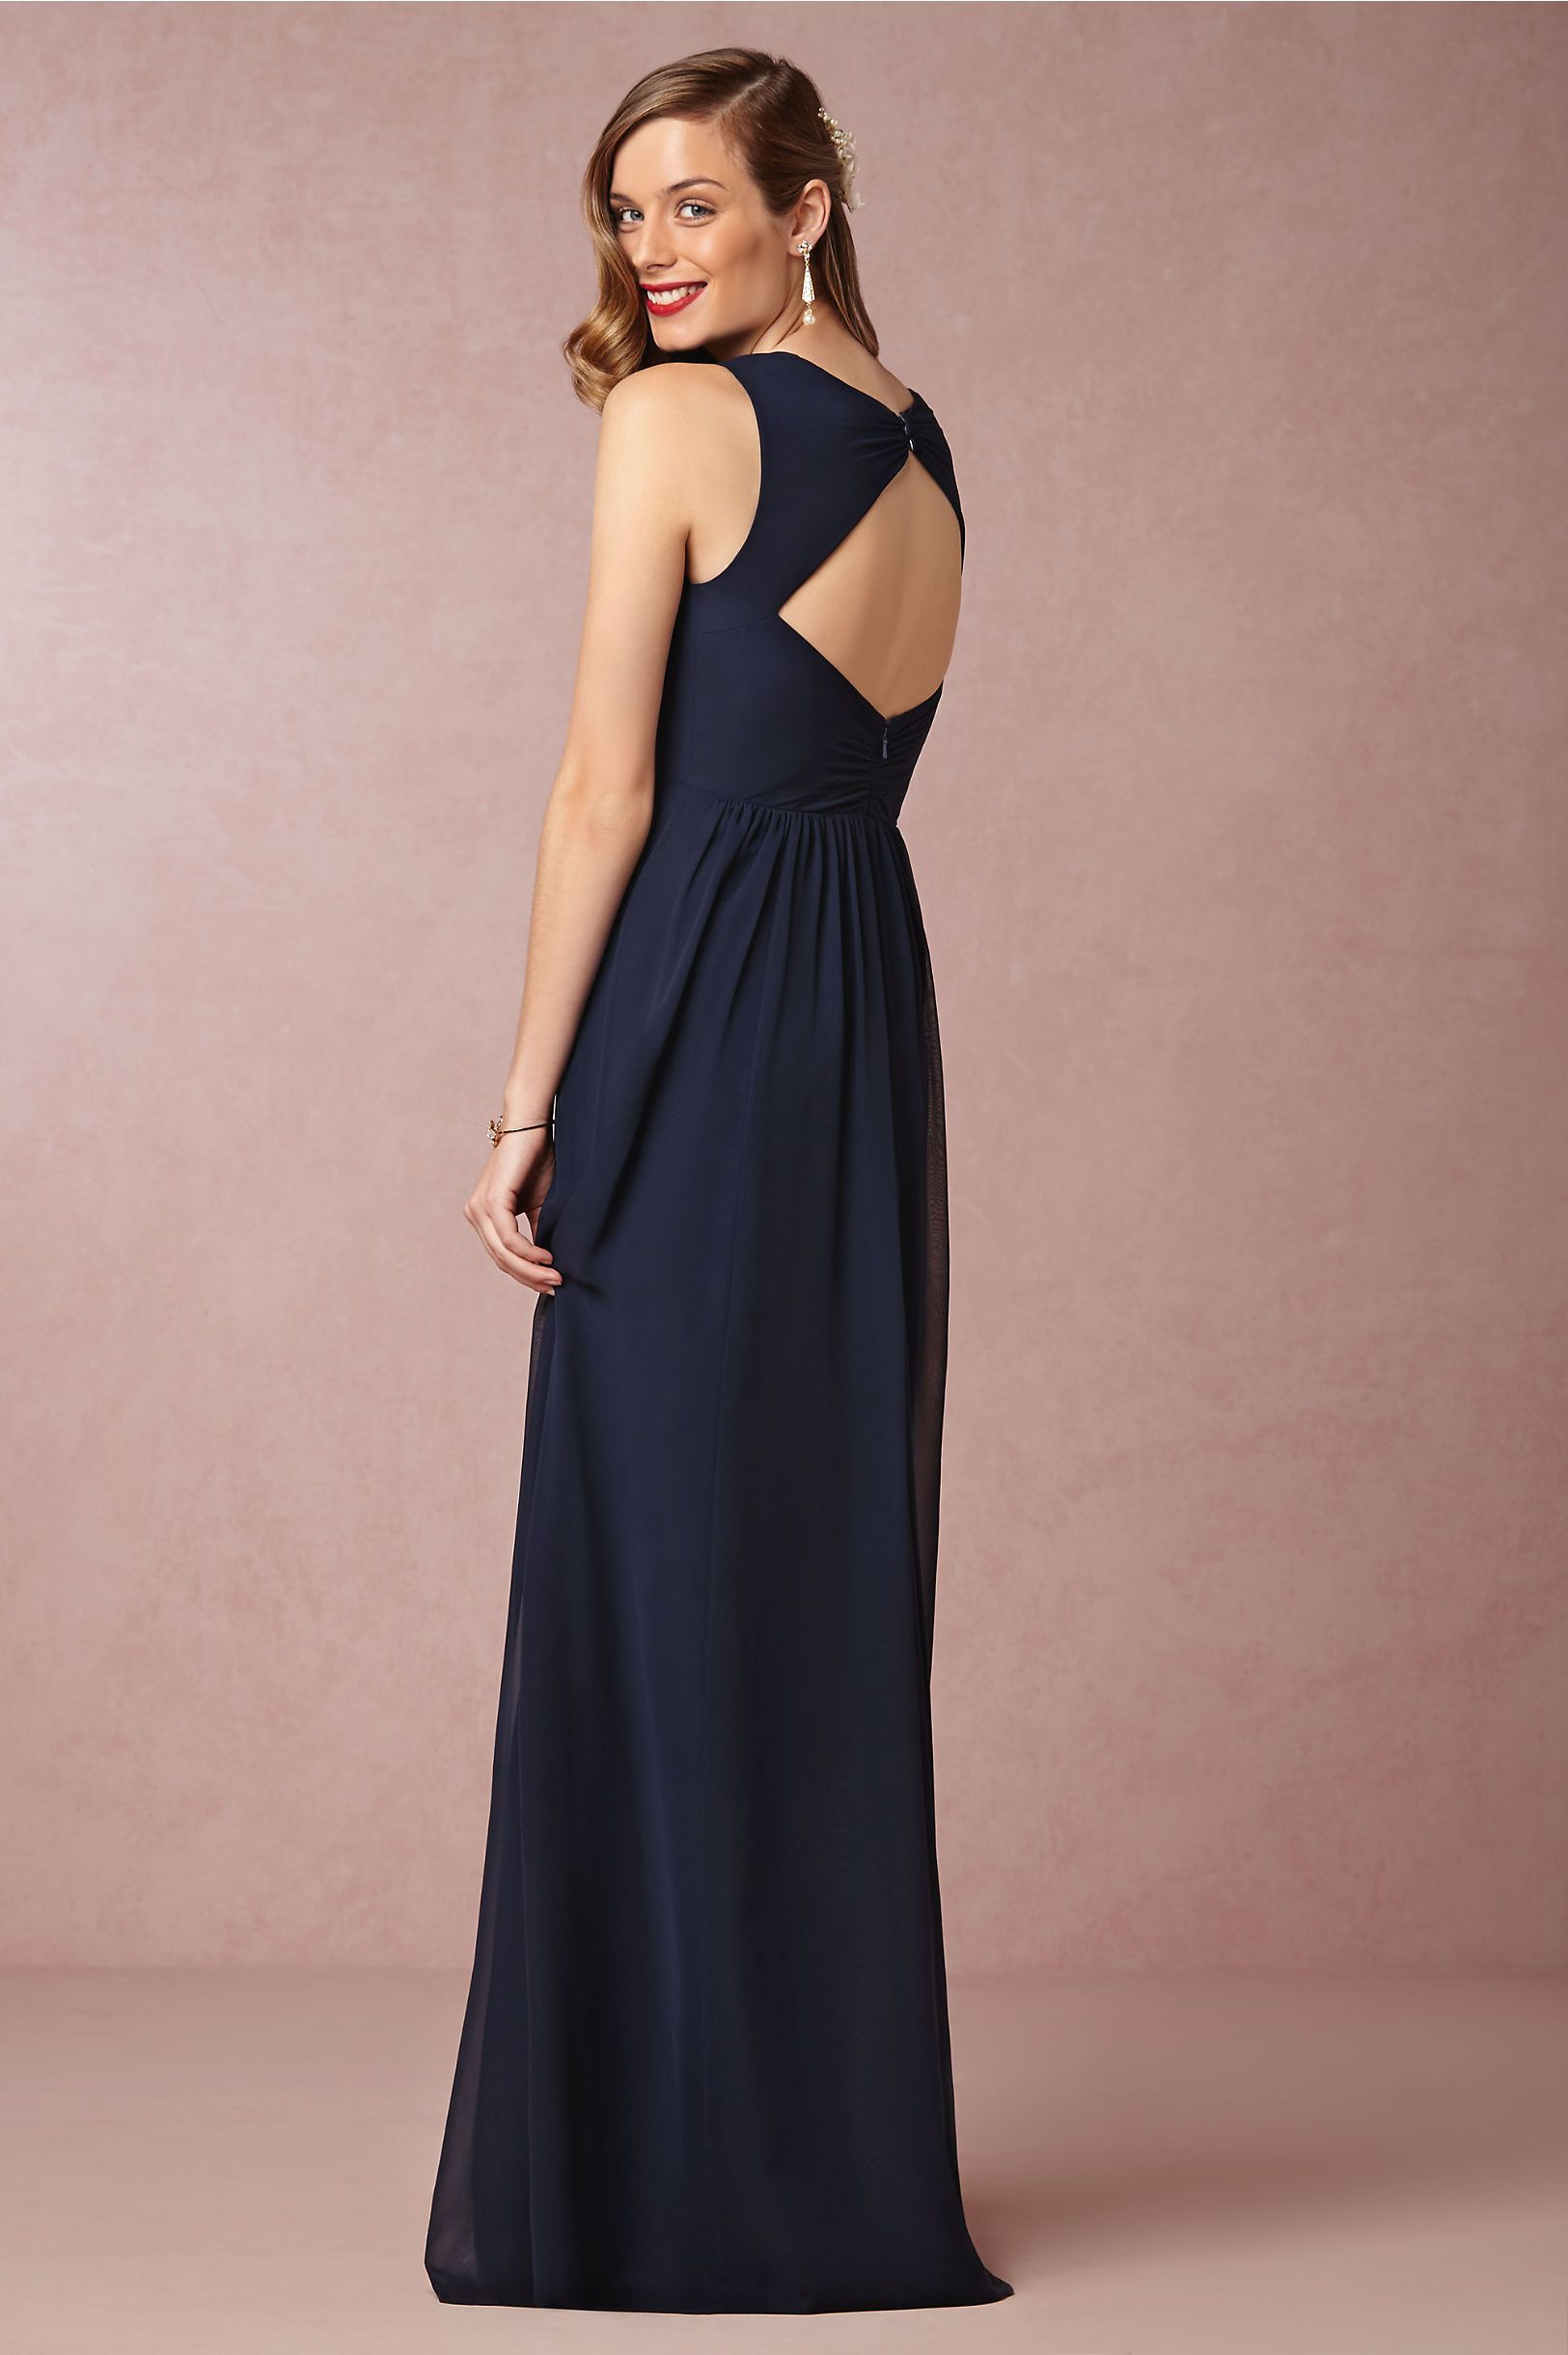 Lujo Navy Blue Bridesmaids Dress Festooning - Colección de Vestidos ...